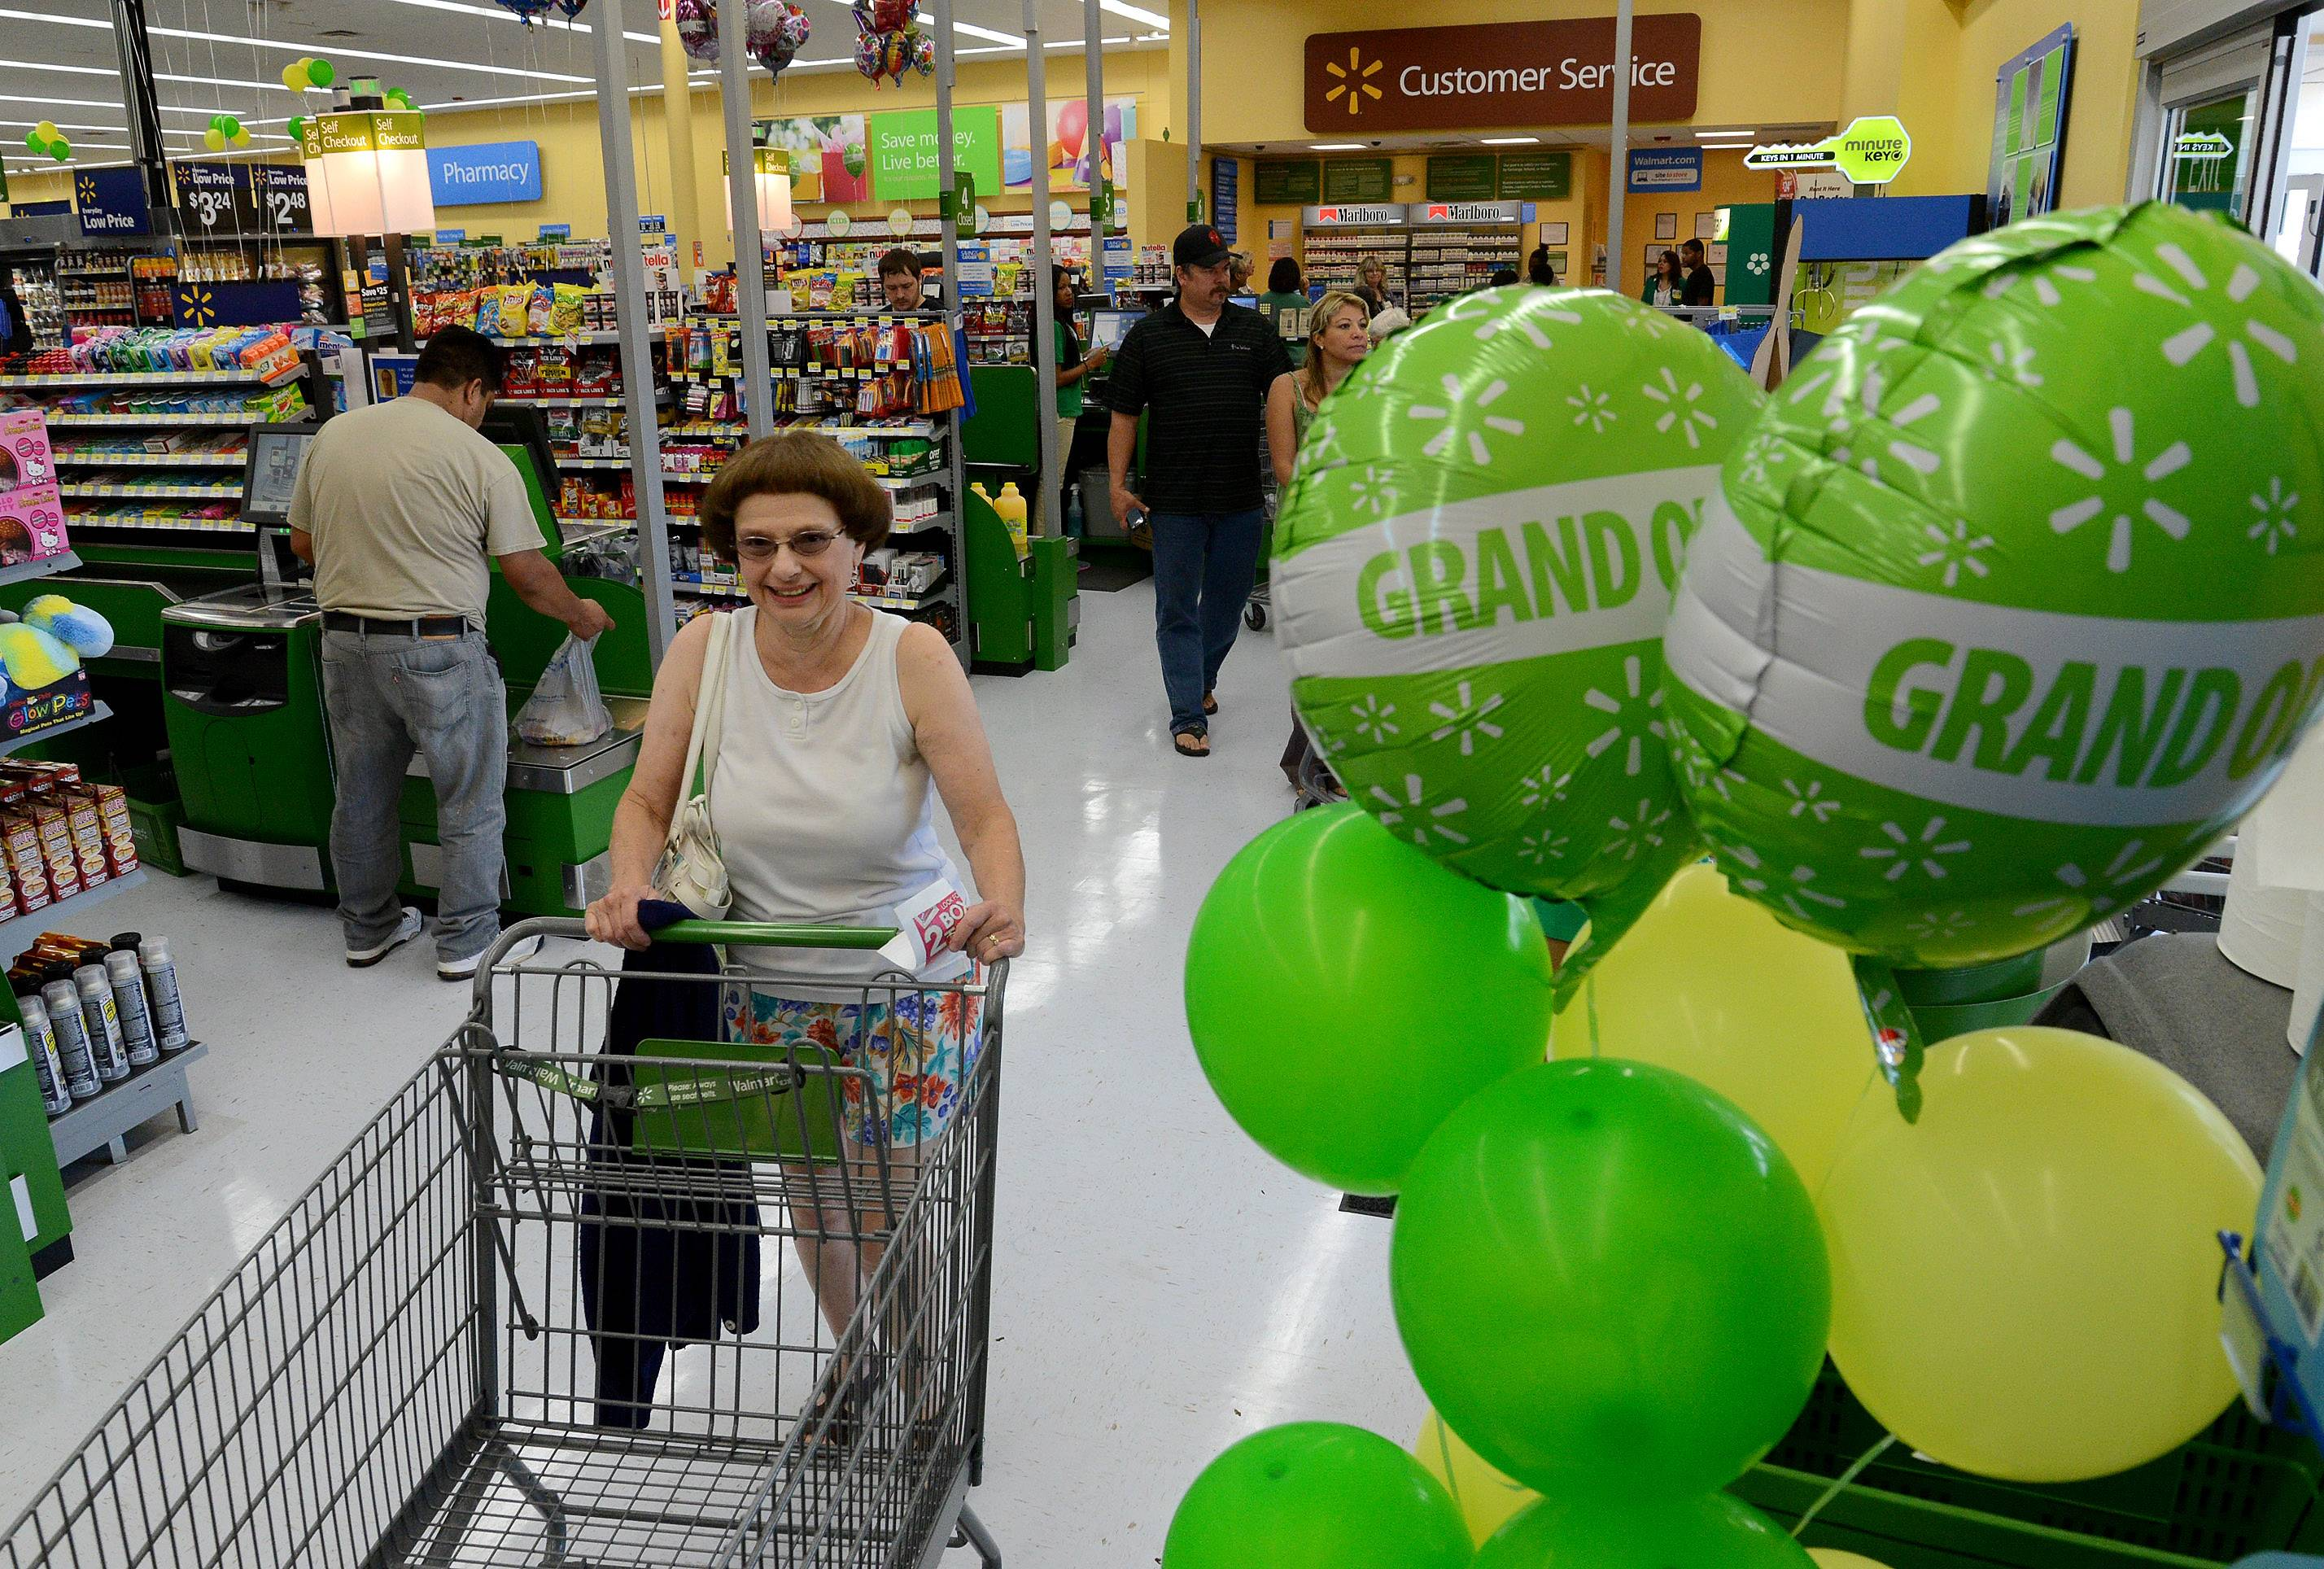 Sally Benson of Des Plaines begins shopping Wednesday on the first day of the Walmart Neighborhood Market in Des Plaines.